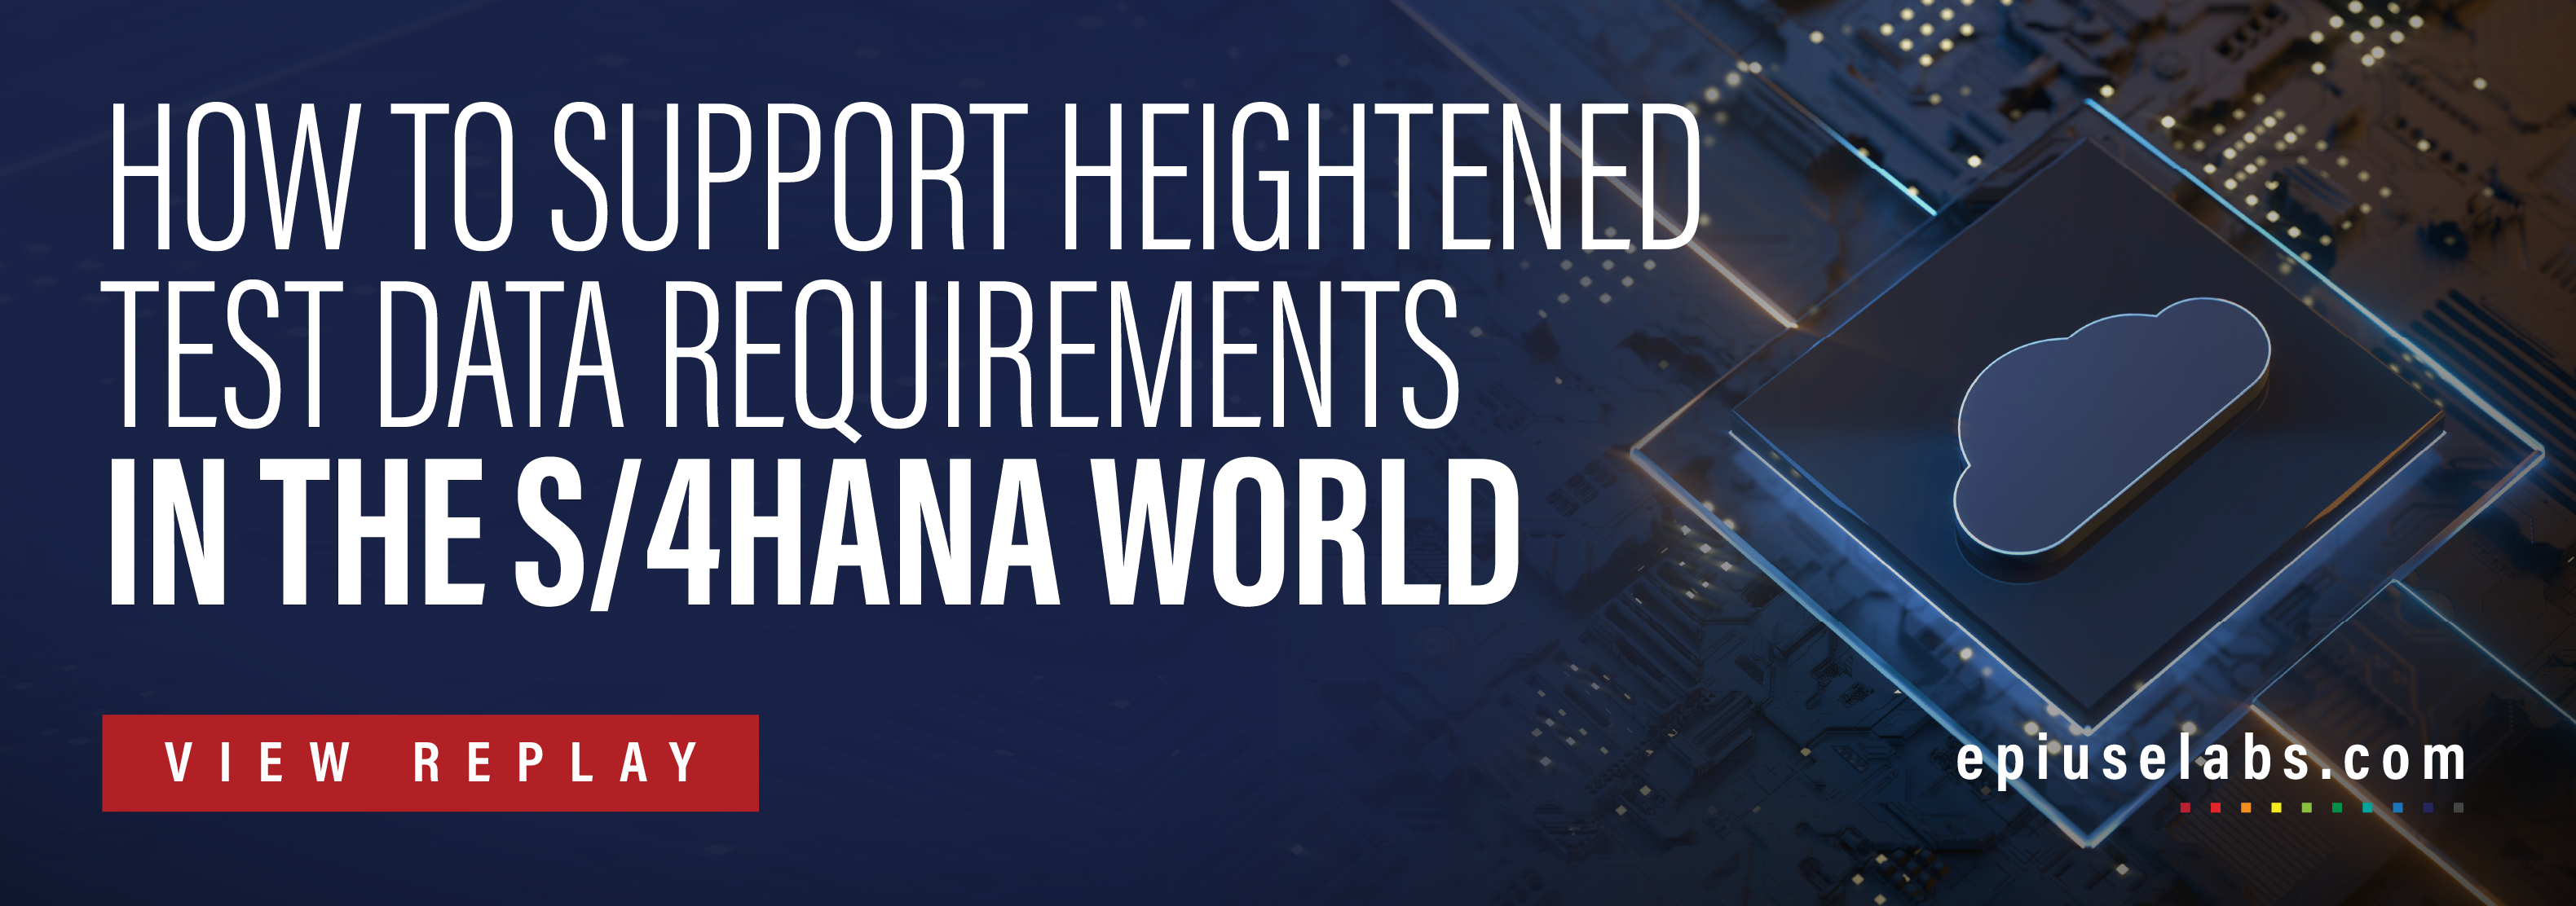 How to support heightened test data requirements in the S4HANA world_CTA